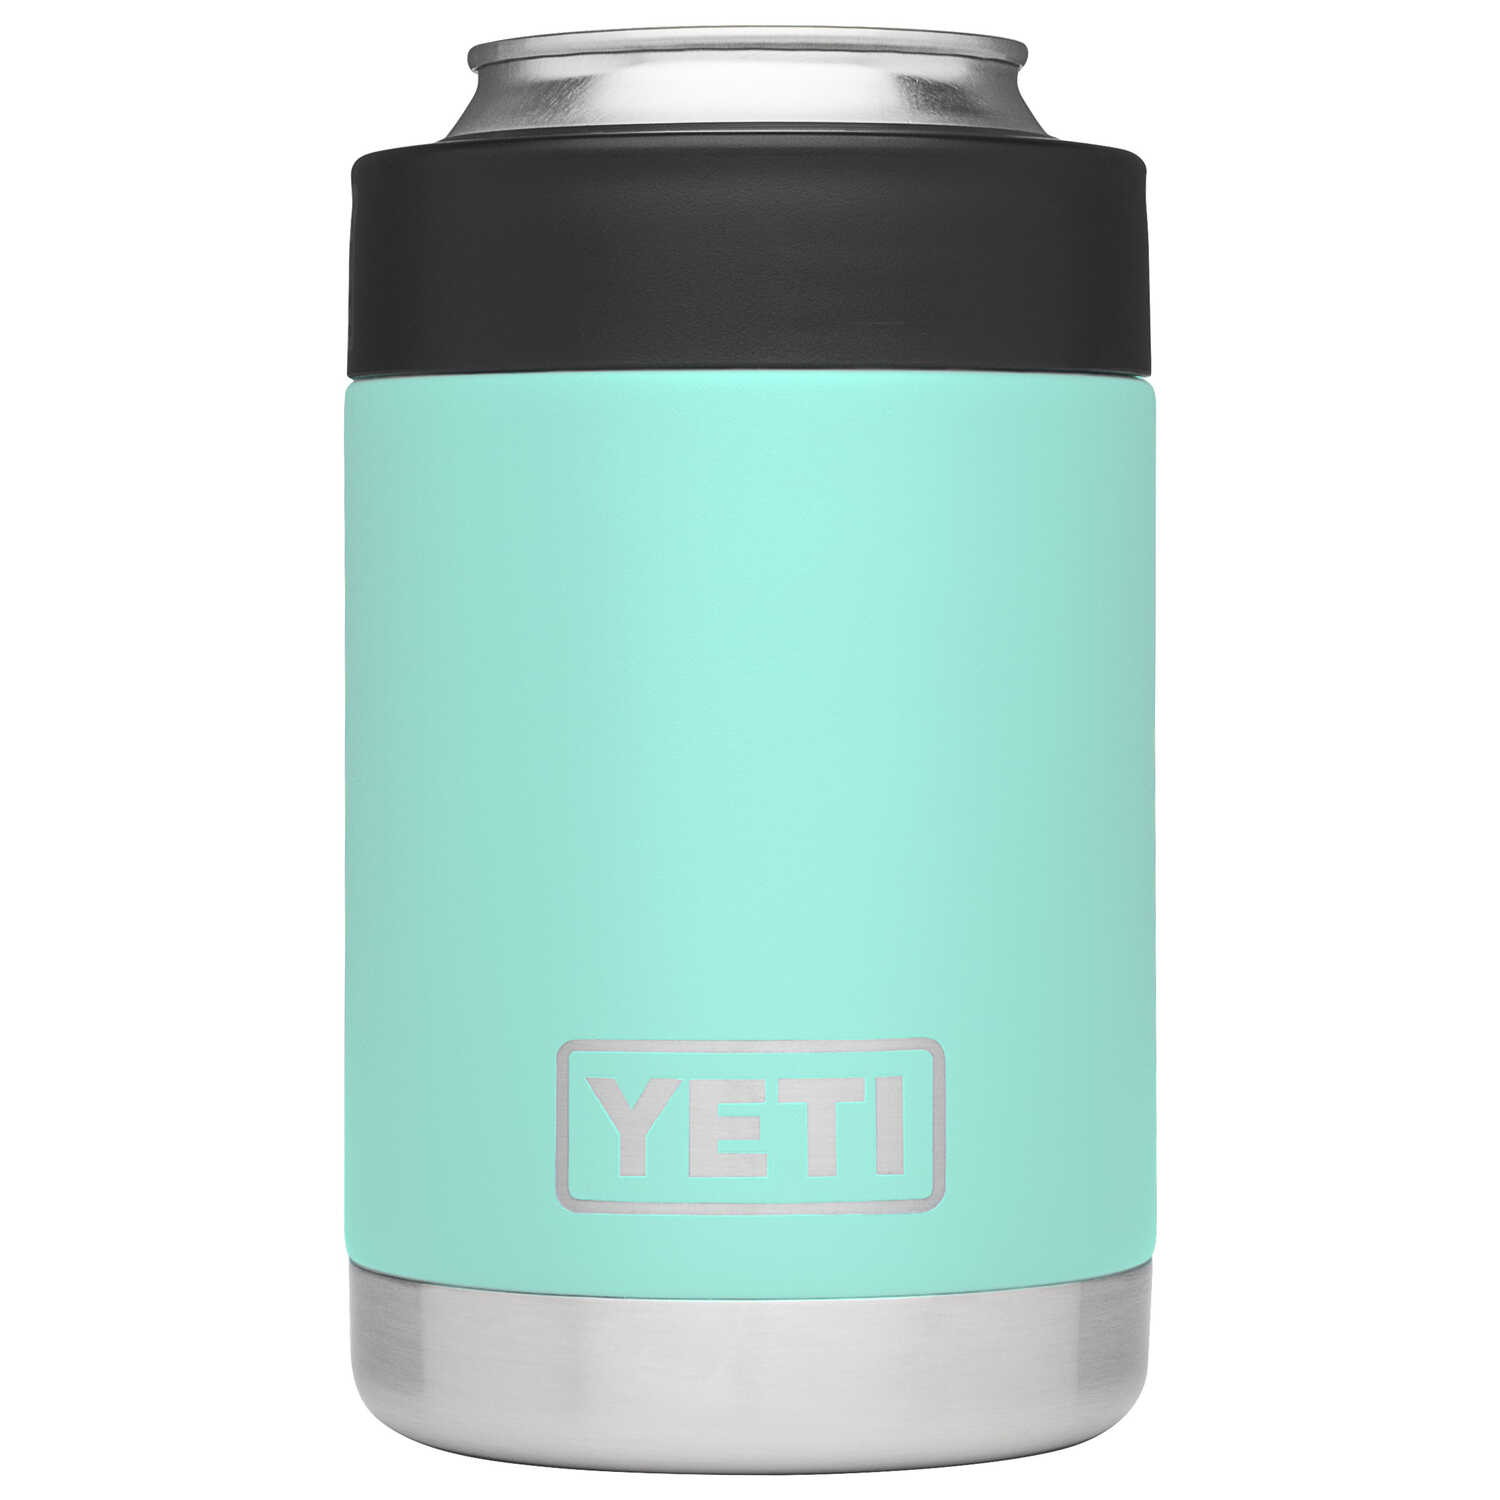 YETI  Rambler Colster  Seafoam Green  Stainless Steel  BPA Free 12  Beverage Holder